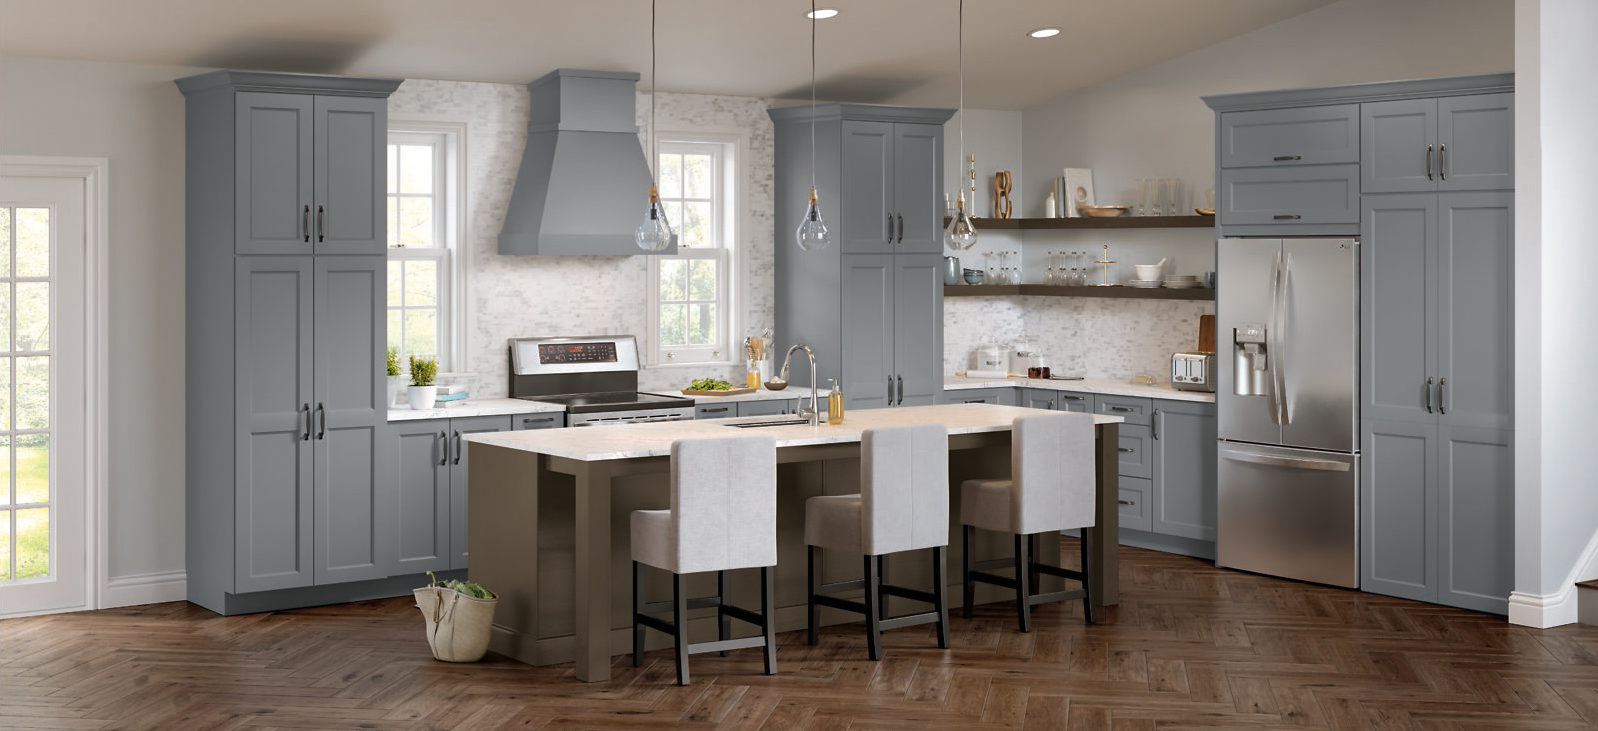 Blue Kitchen Cabinets: A trend that's Here to Stay